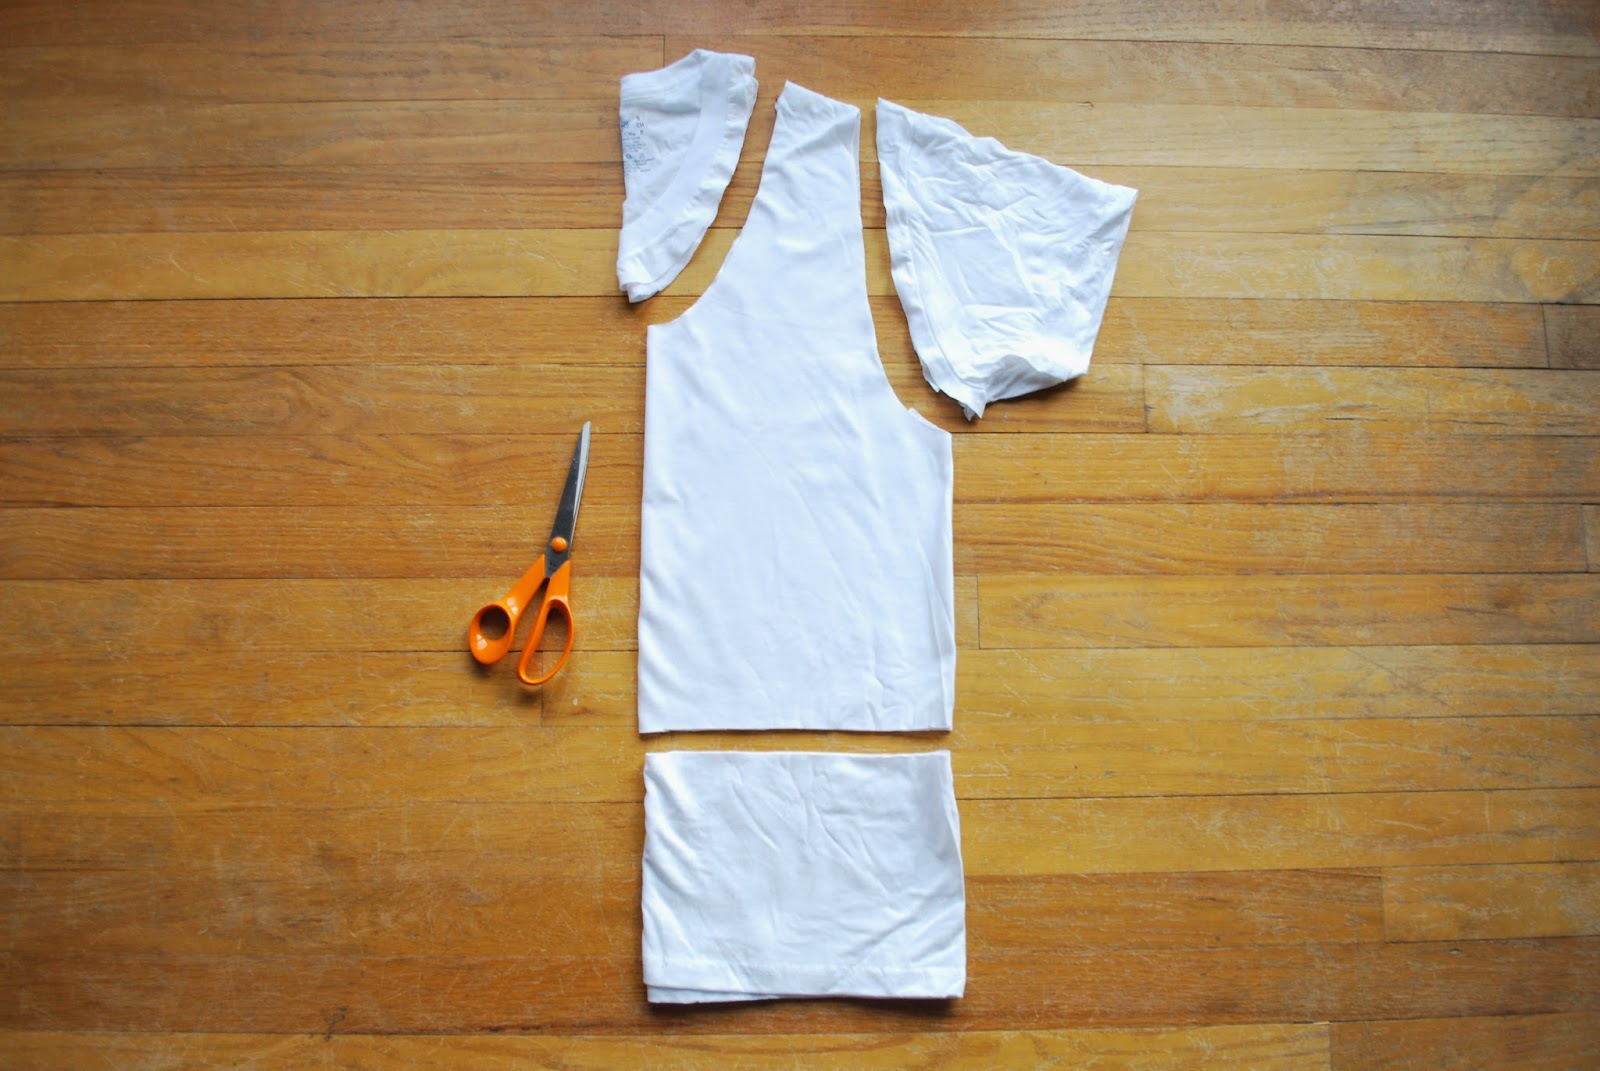 299 no-sew ways to alter a t-shirt | Hey Wanderer